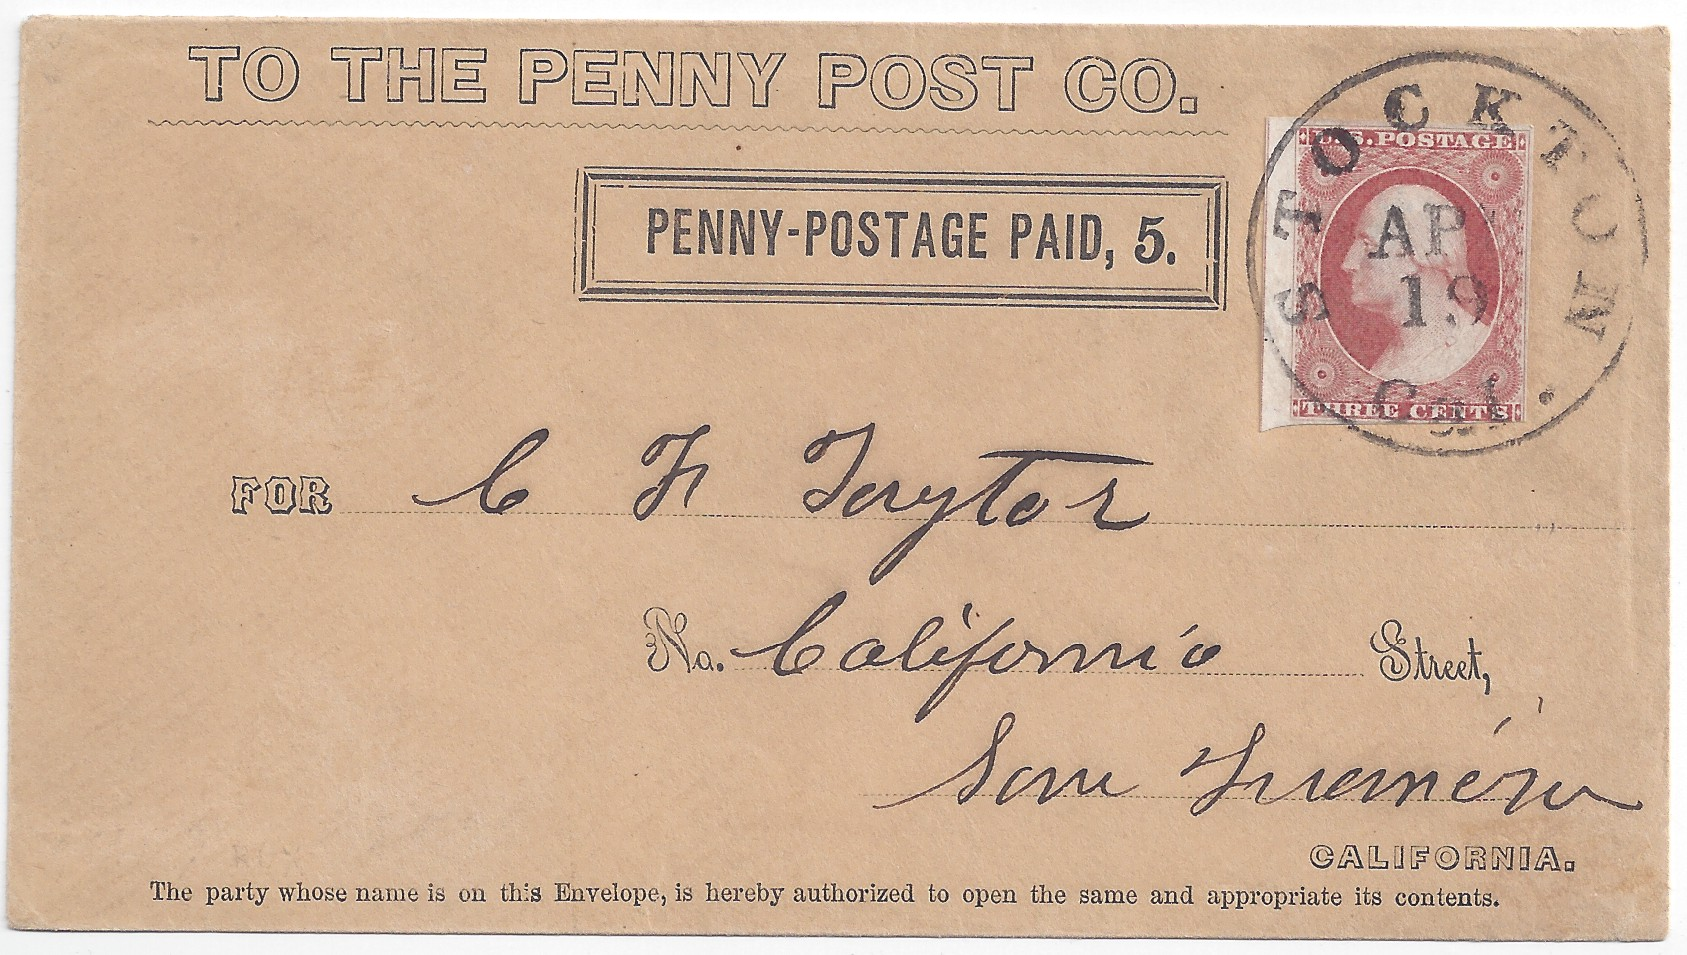 at san francisco 5 type iii printed frank 3 adhesive by mail from stockton to san francisco carried from penny post company box at post office to box san francisco office 5